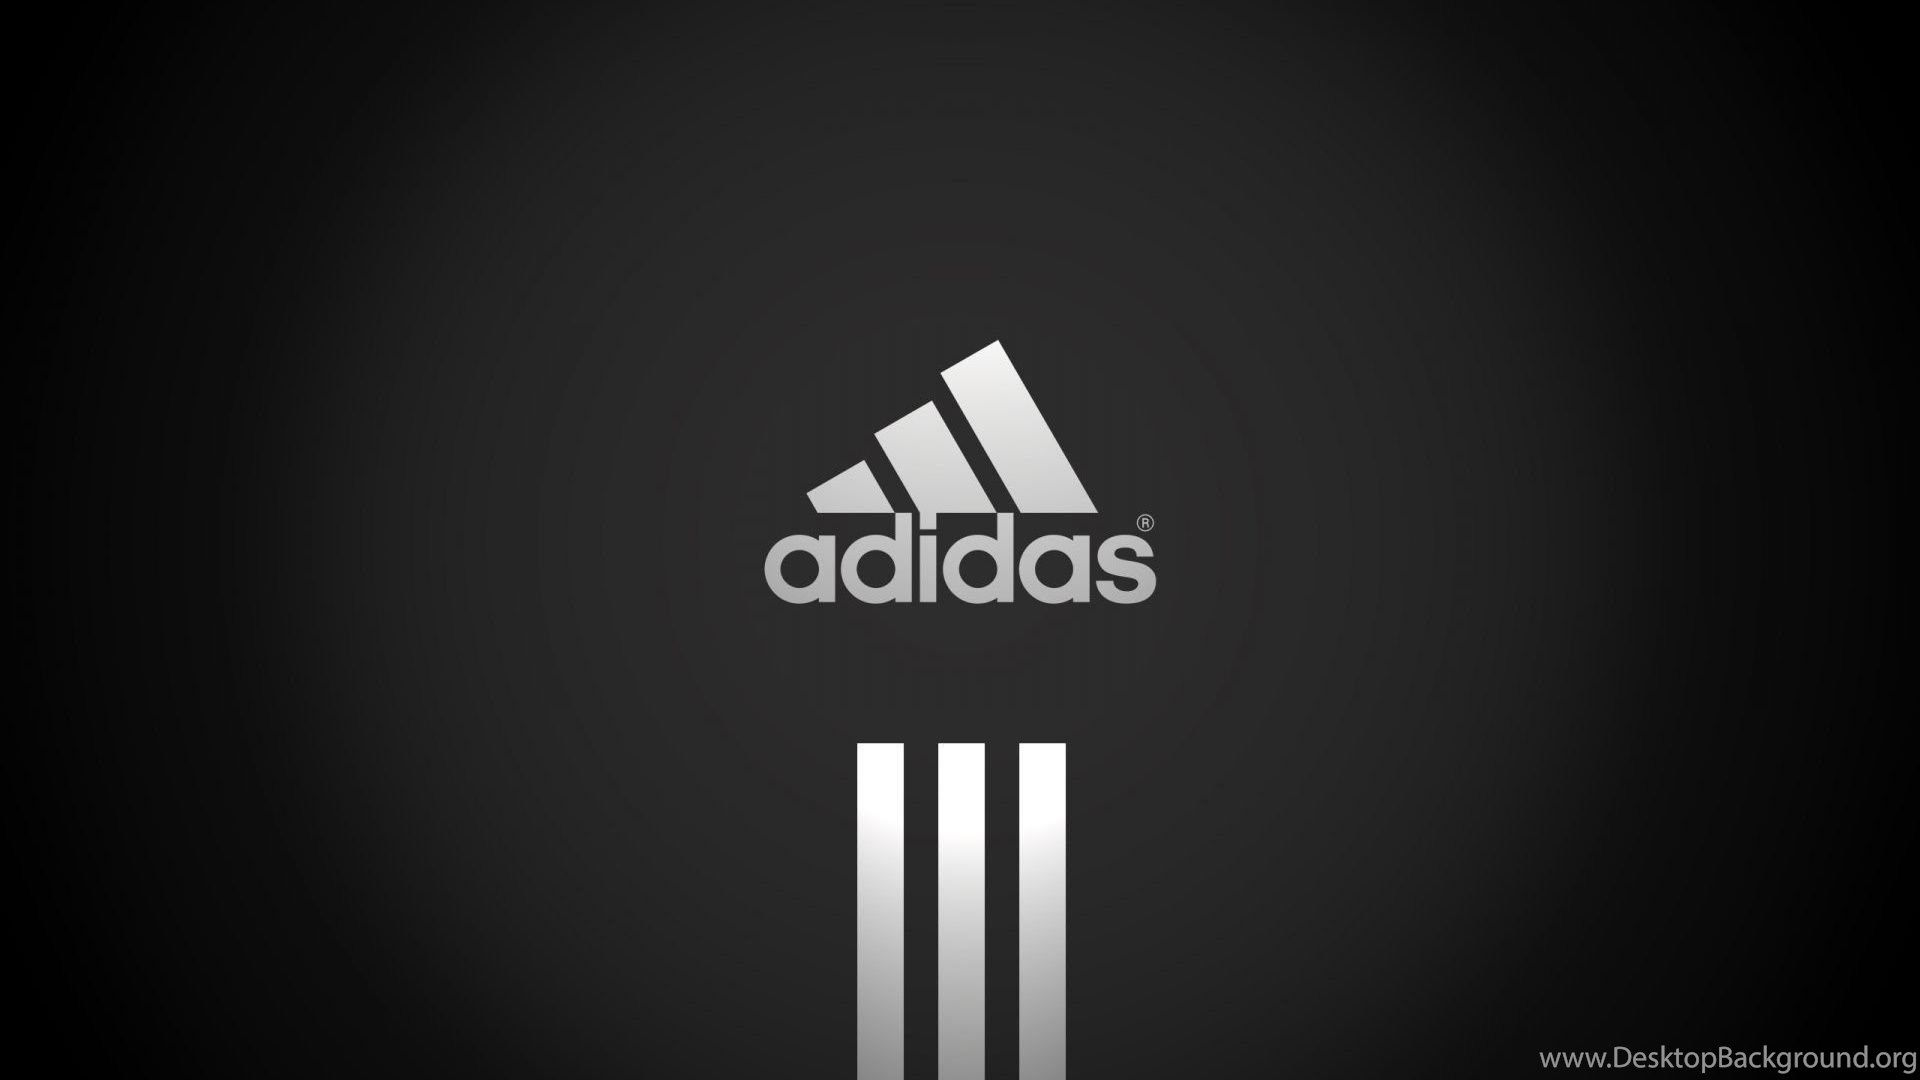 1920x1080 Adidas Black 1080i Wallpapers MixHD Wallpapers Desktop Background